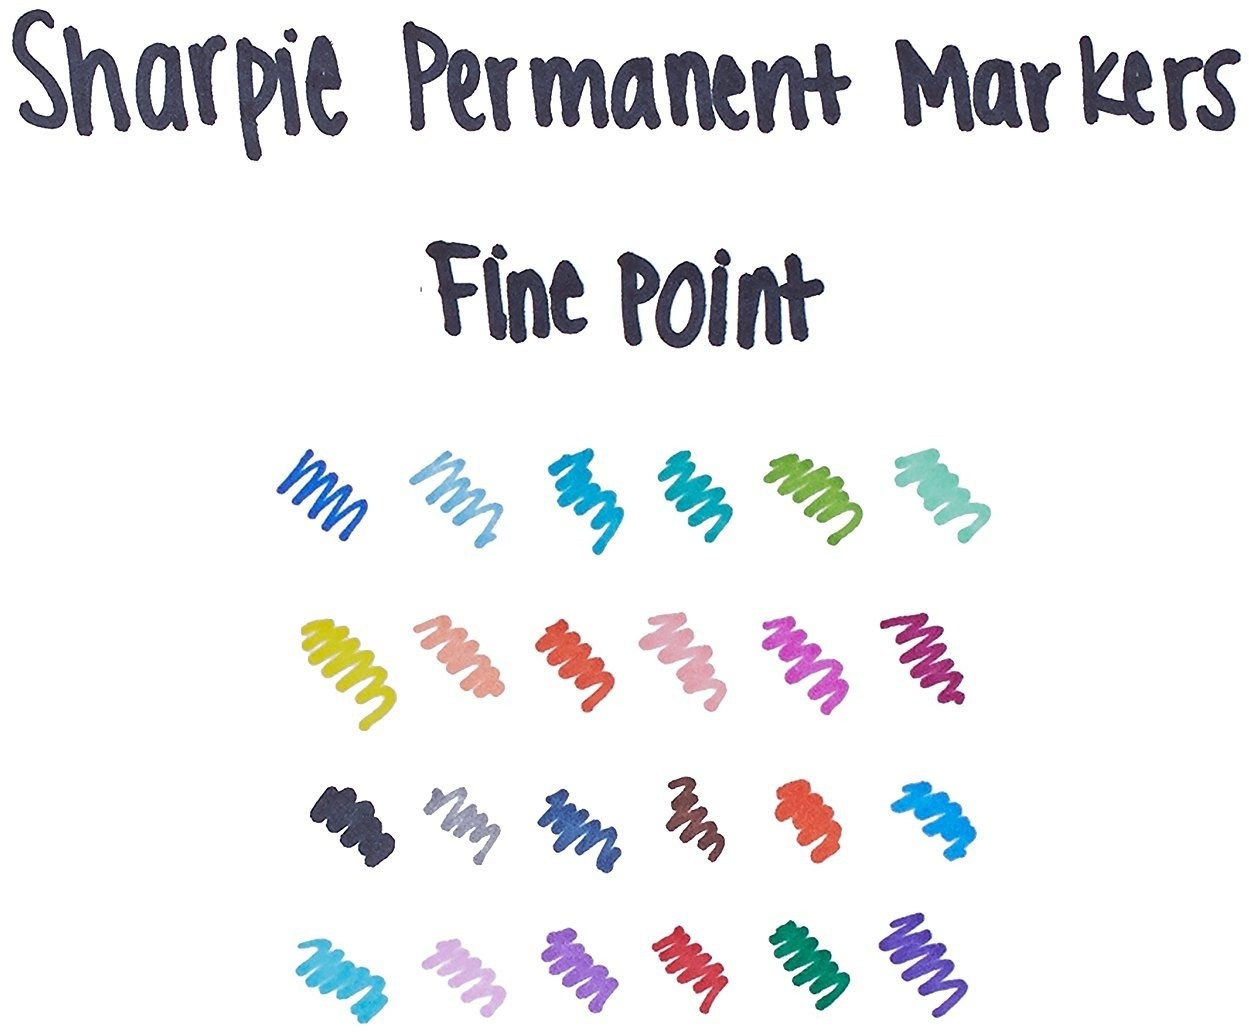 Sharpie 75846 Fine Point Permanent Markers, Assorted Colors; 3 Sets of 24 Markers, Total 72 Markers; Proudly Permanent Ink Marks on Paper, Plastic, Metal and Most Other Surfaces by Sharpie (Image #4)